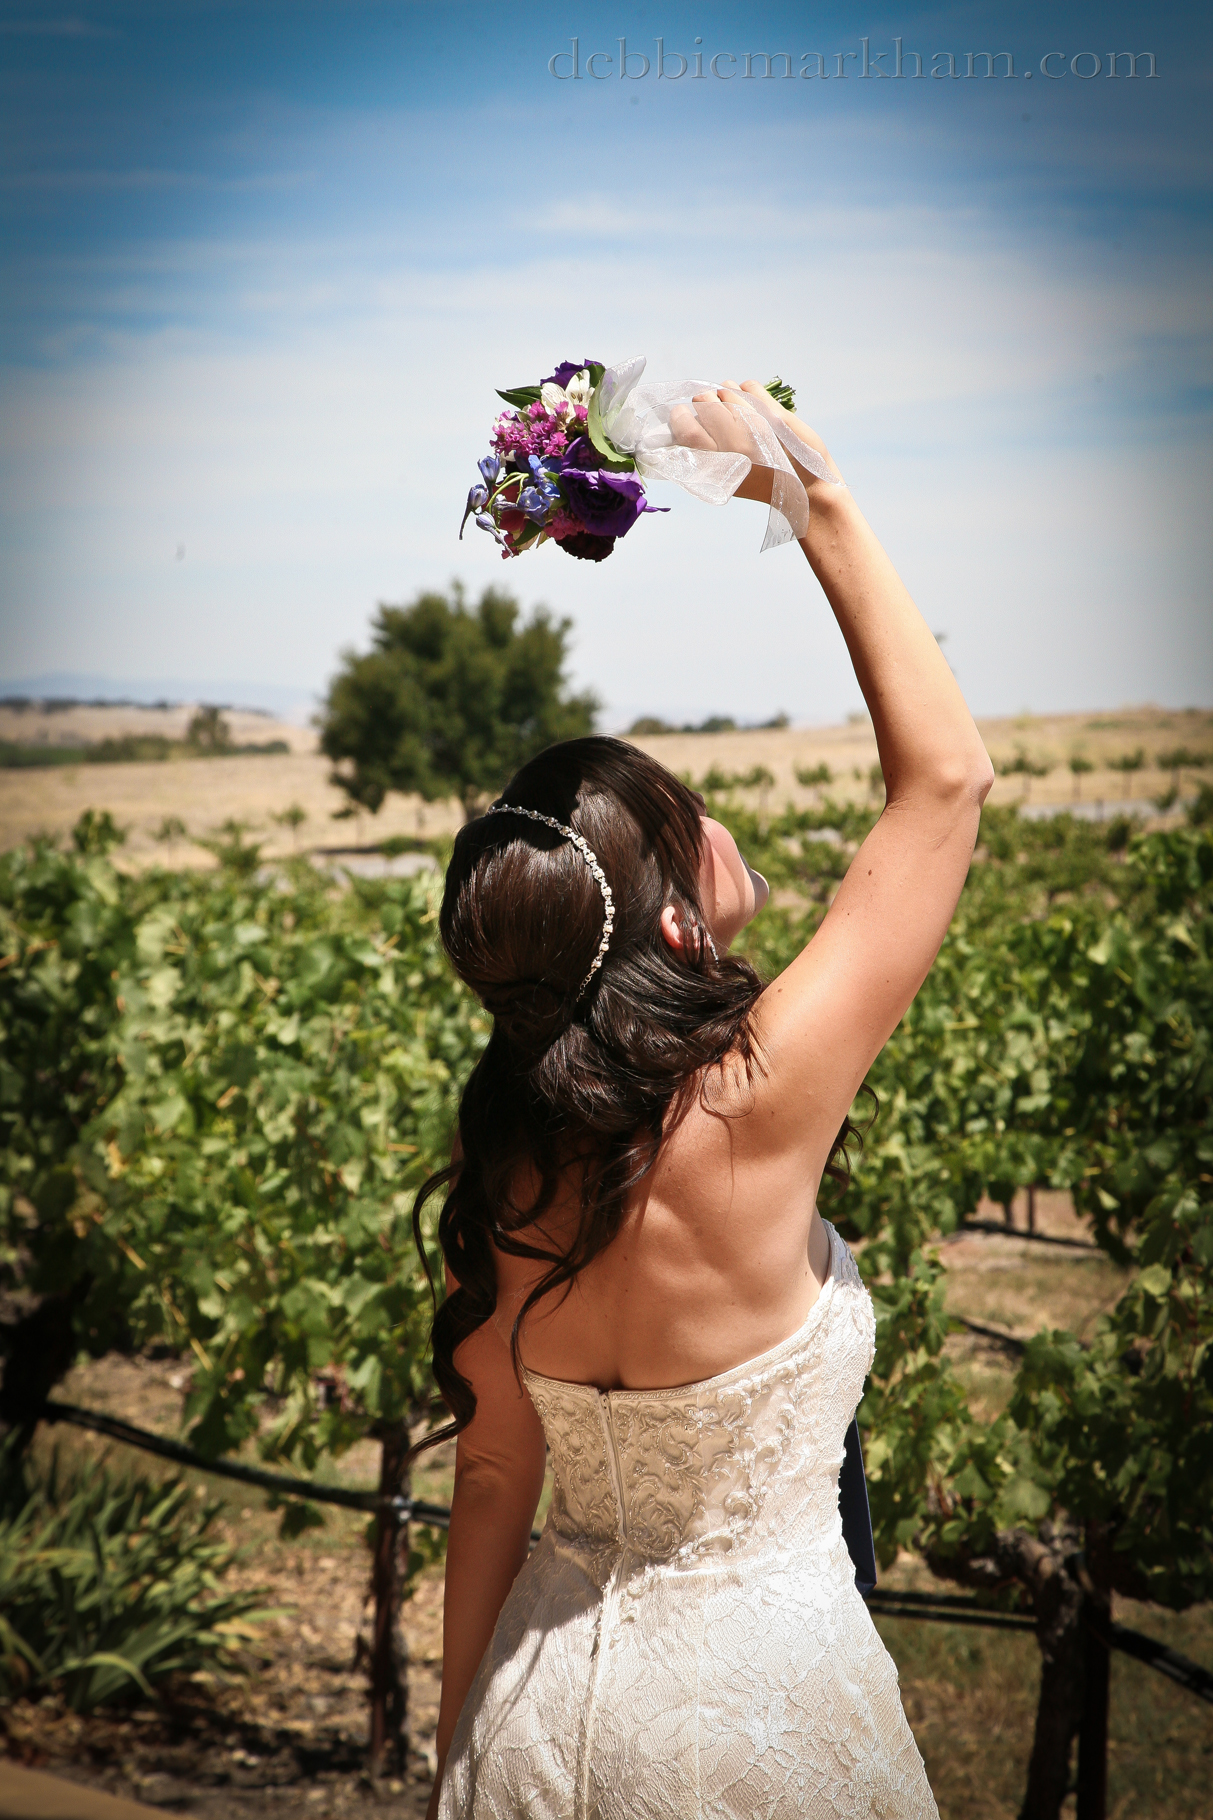 Cambria Photographer Debbie Markham-Paso Robles Wine Country Wedding at Castoro Winery-Bride tossing bouquet at vineyard